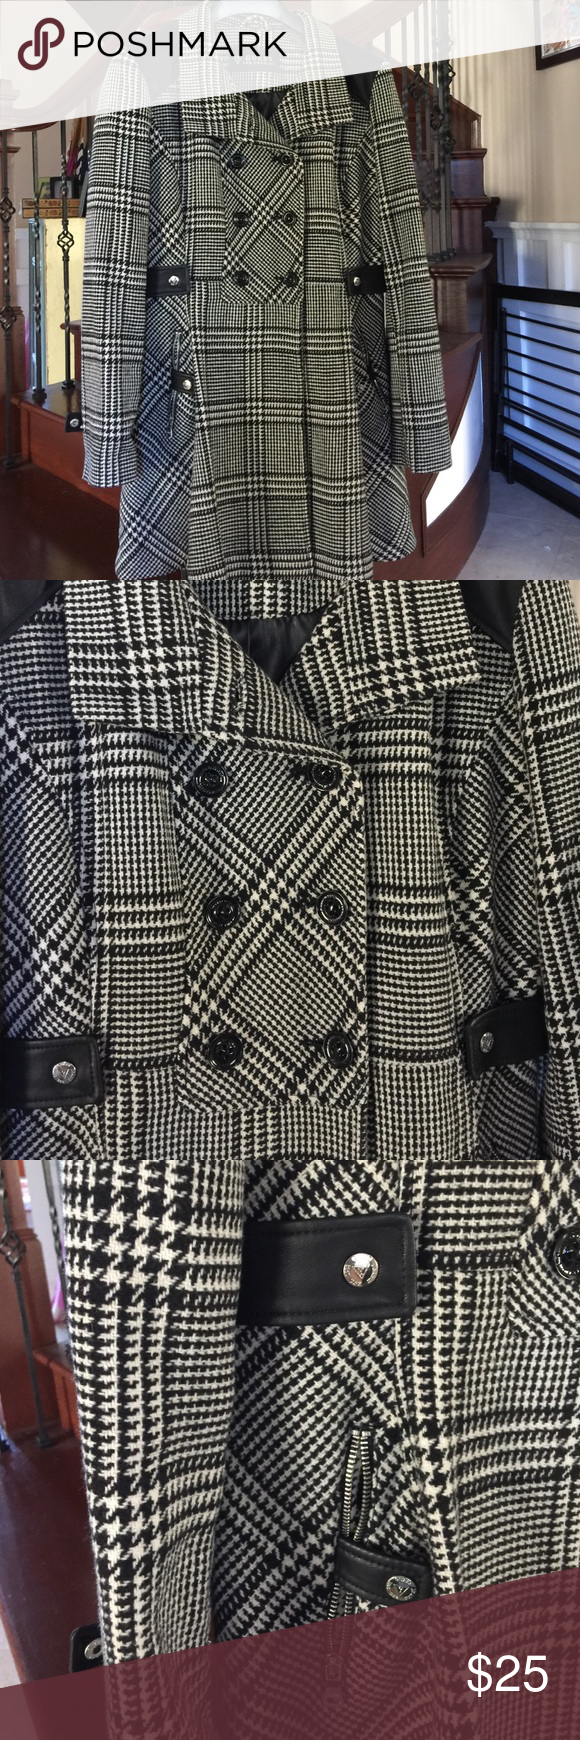 Guess peacoat Plaid black and white faux leather trimmed peacoat by Guess.  Zippered pockets and zipper along wrists silver buttons and zippers.  Polyester lined interior.  Wool and polyester blend exterior.  Flares out at hips Guess Jackets & Coats Pea Coats